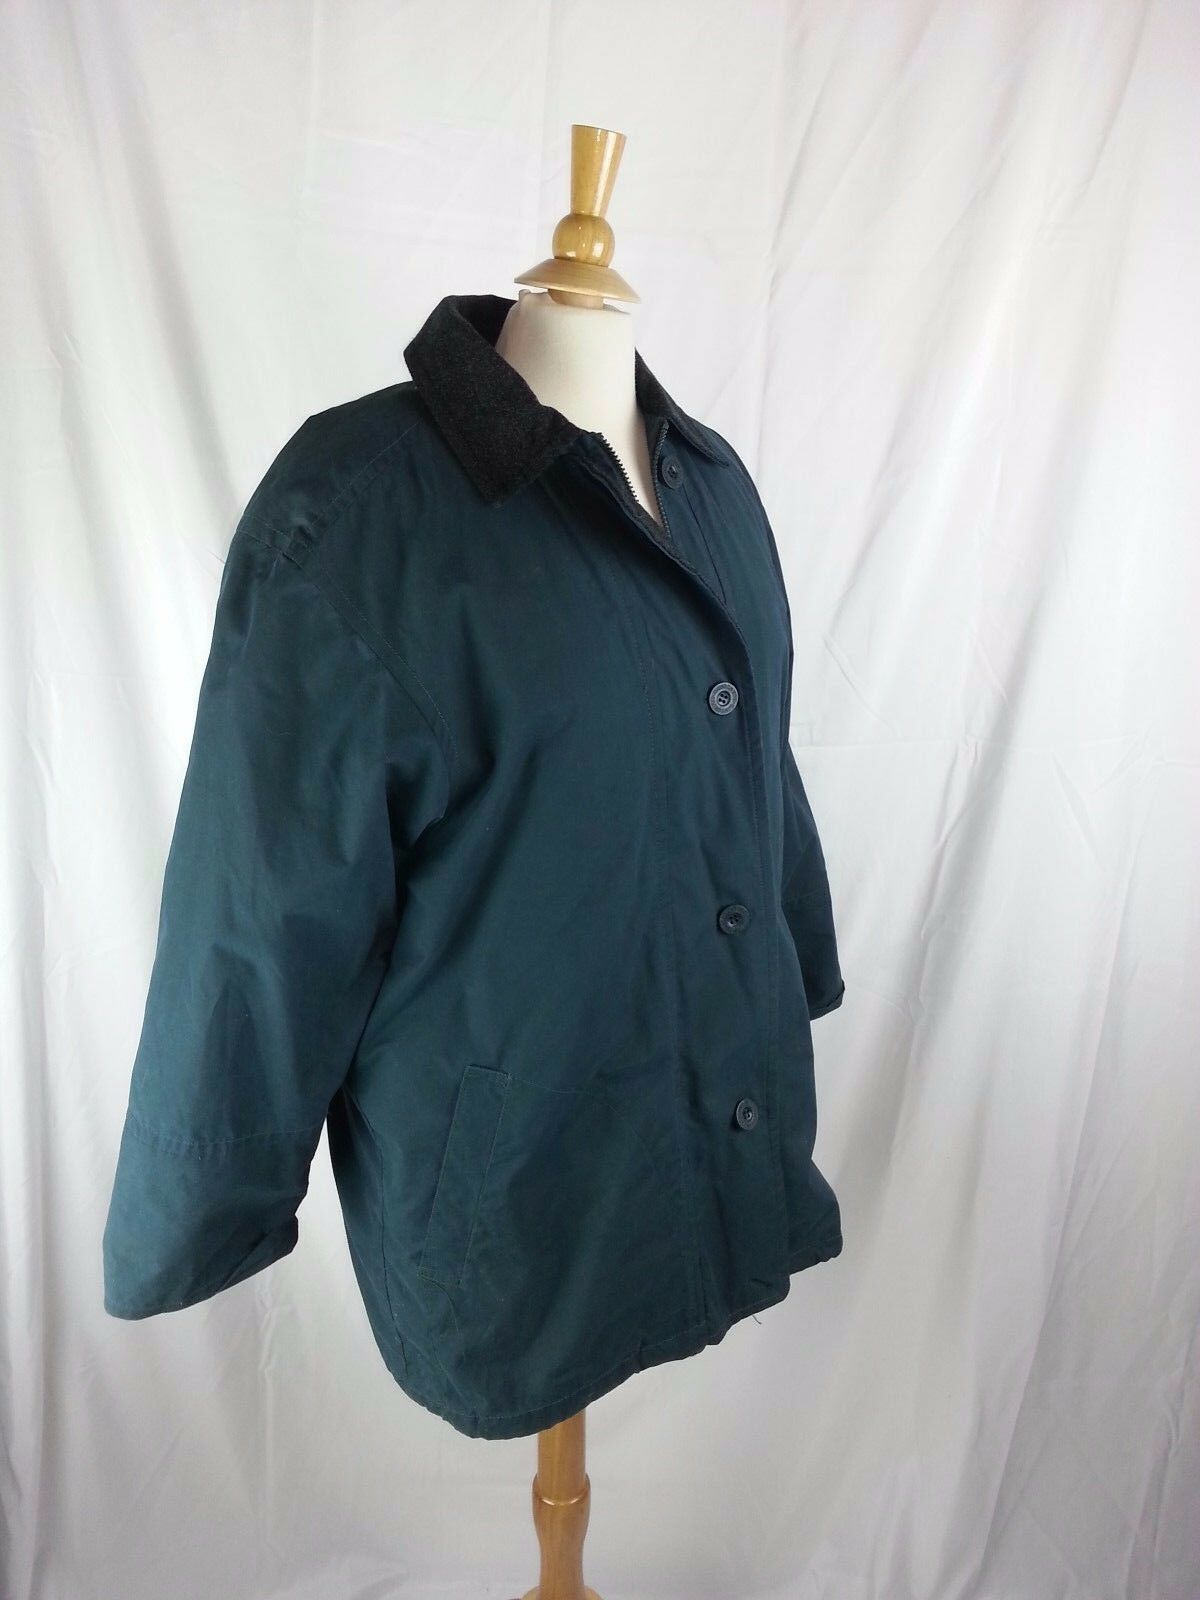 Women's London Fog Raincoat Ladies Coat bluee Green M Medium Liner